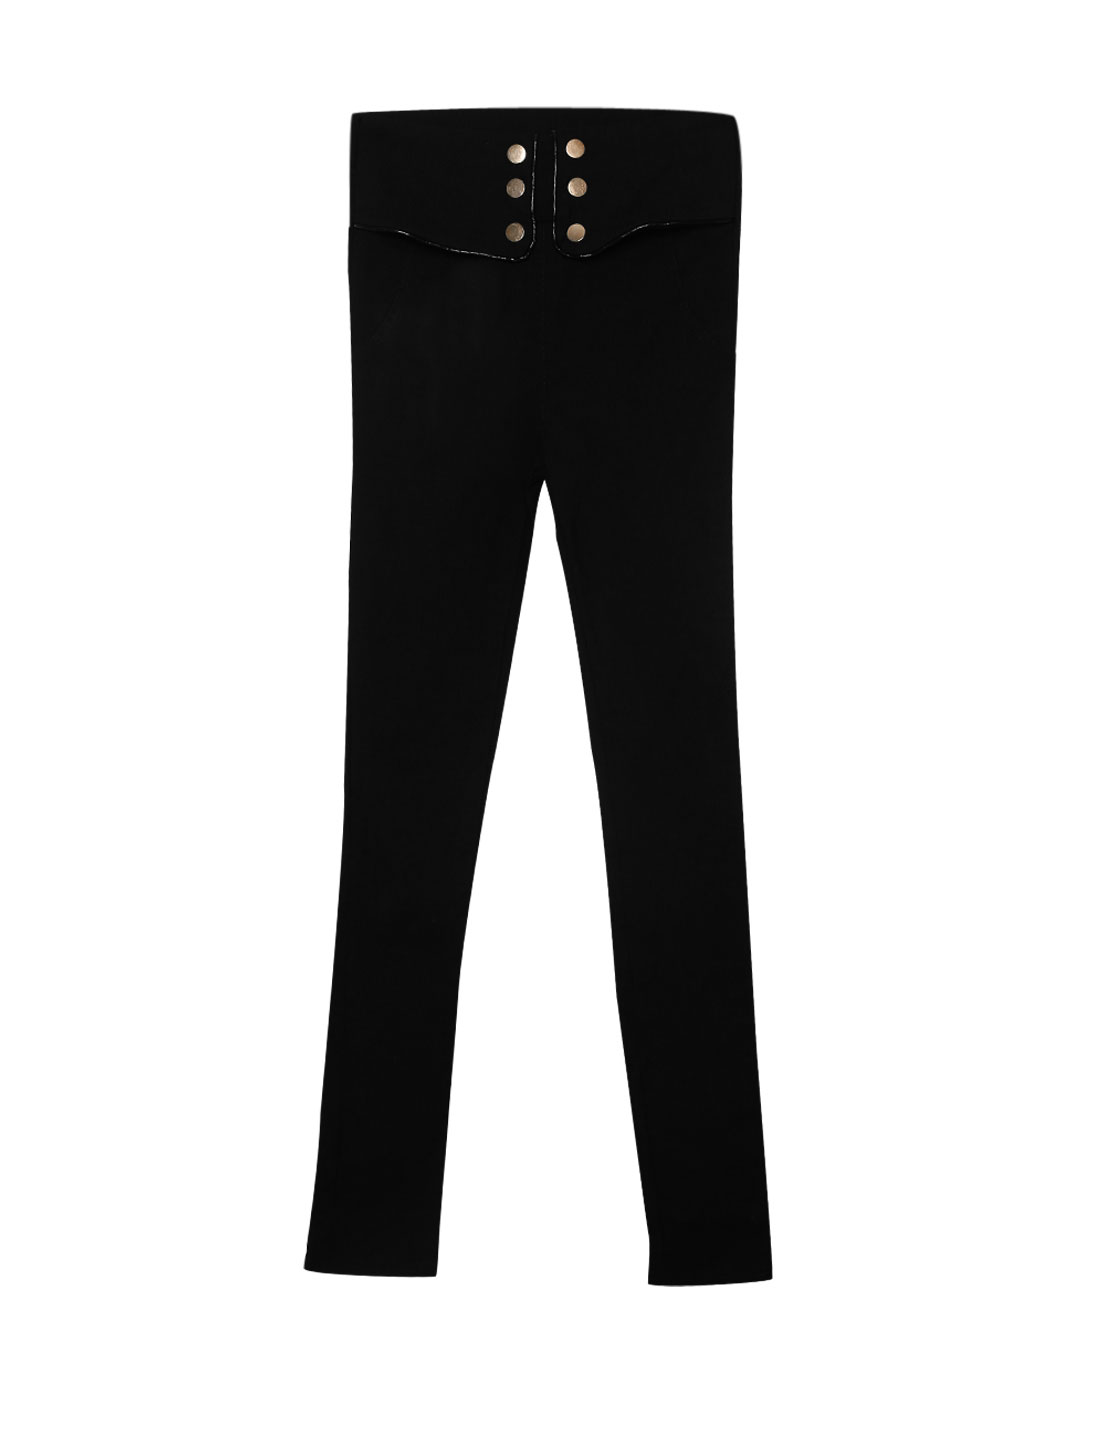 Women High Waist Button Decor Skinny Casual Pencil Pants Black XS